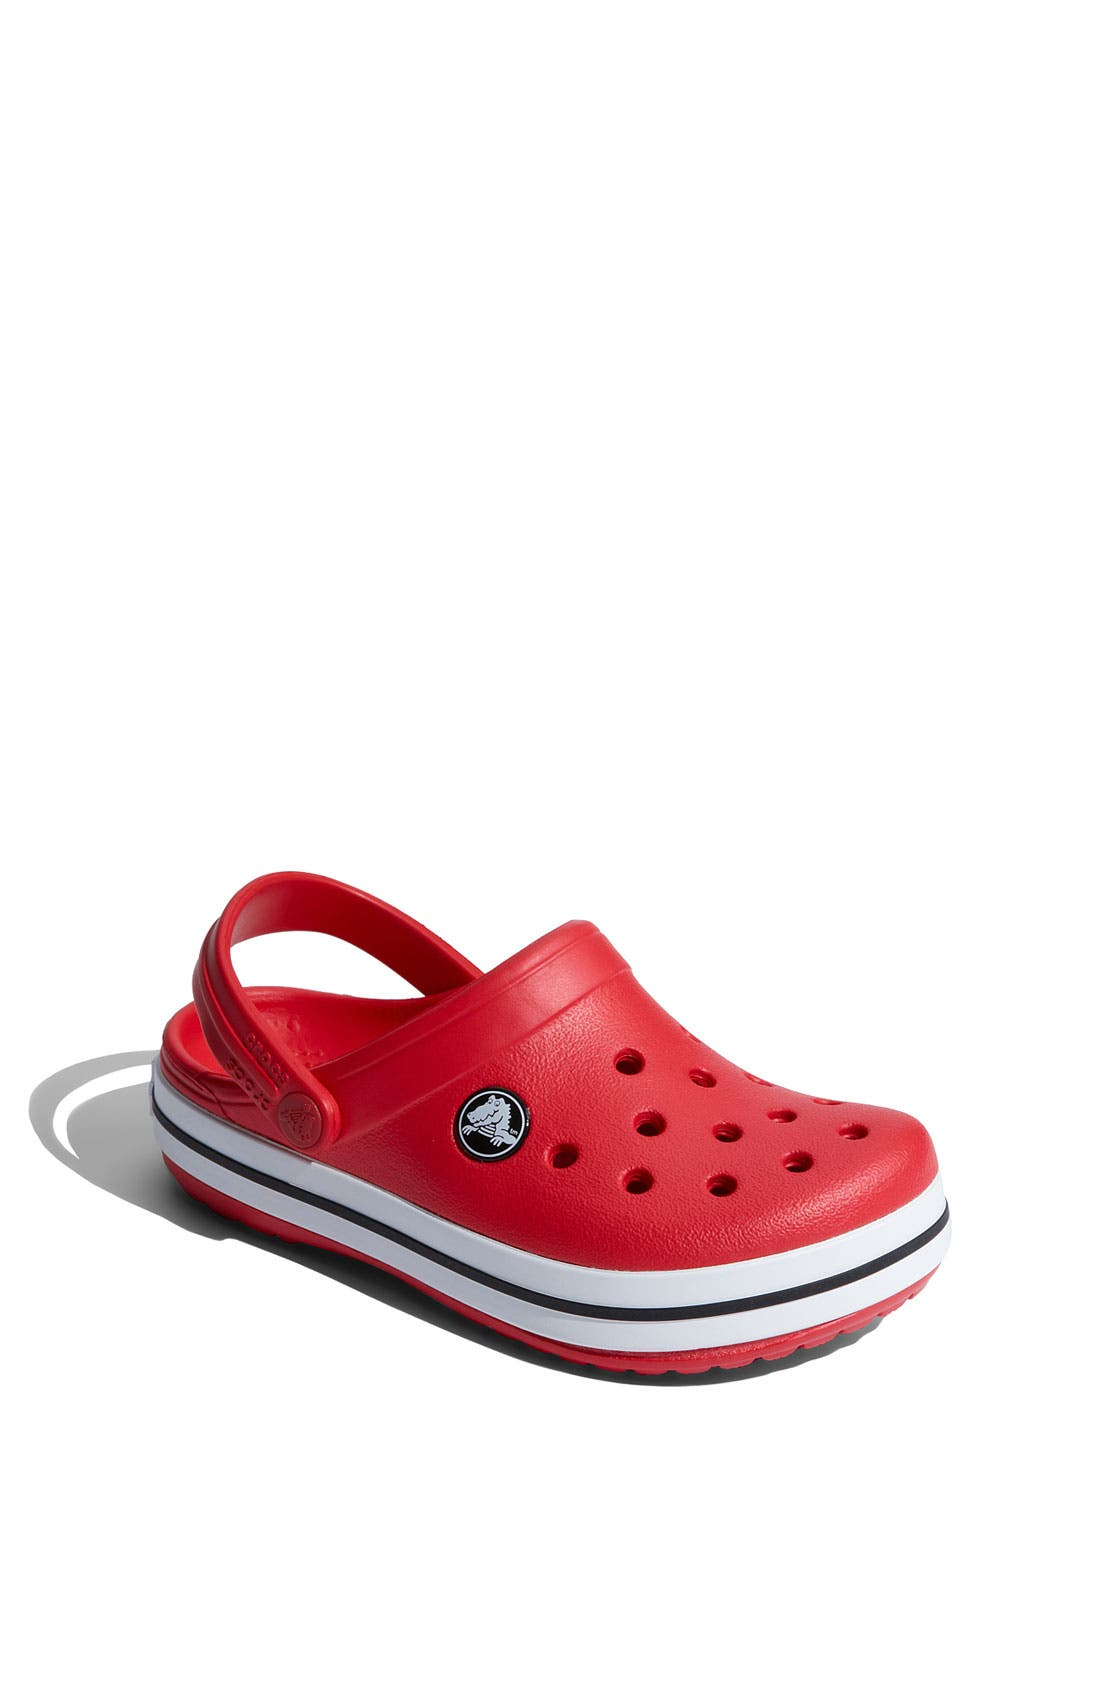 Main Image - CROCS™ 'Crocband' Slip-On (Walker, Toddler & Little Kid)